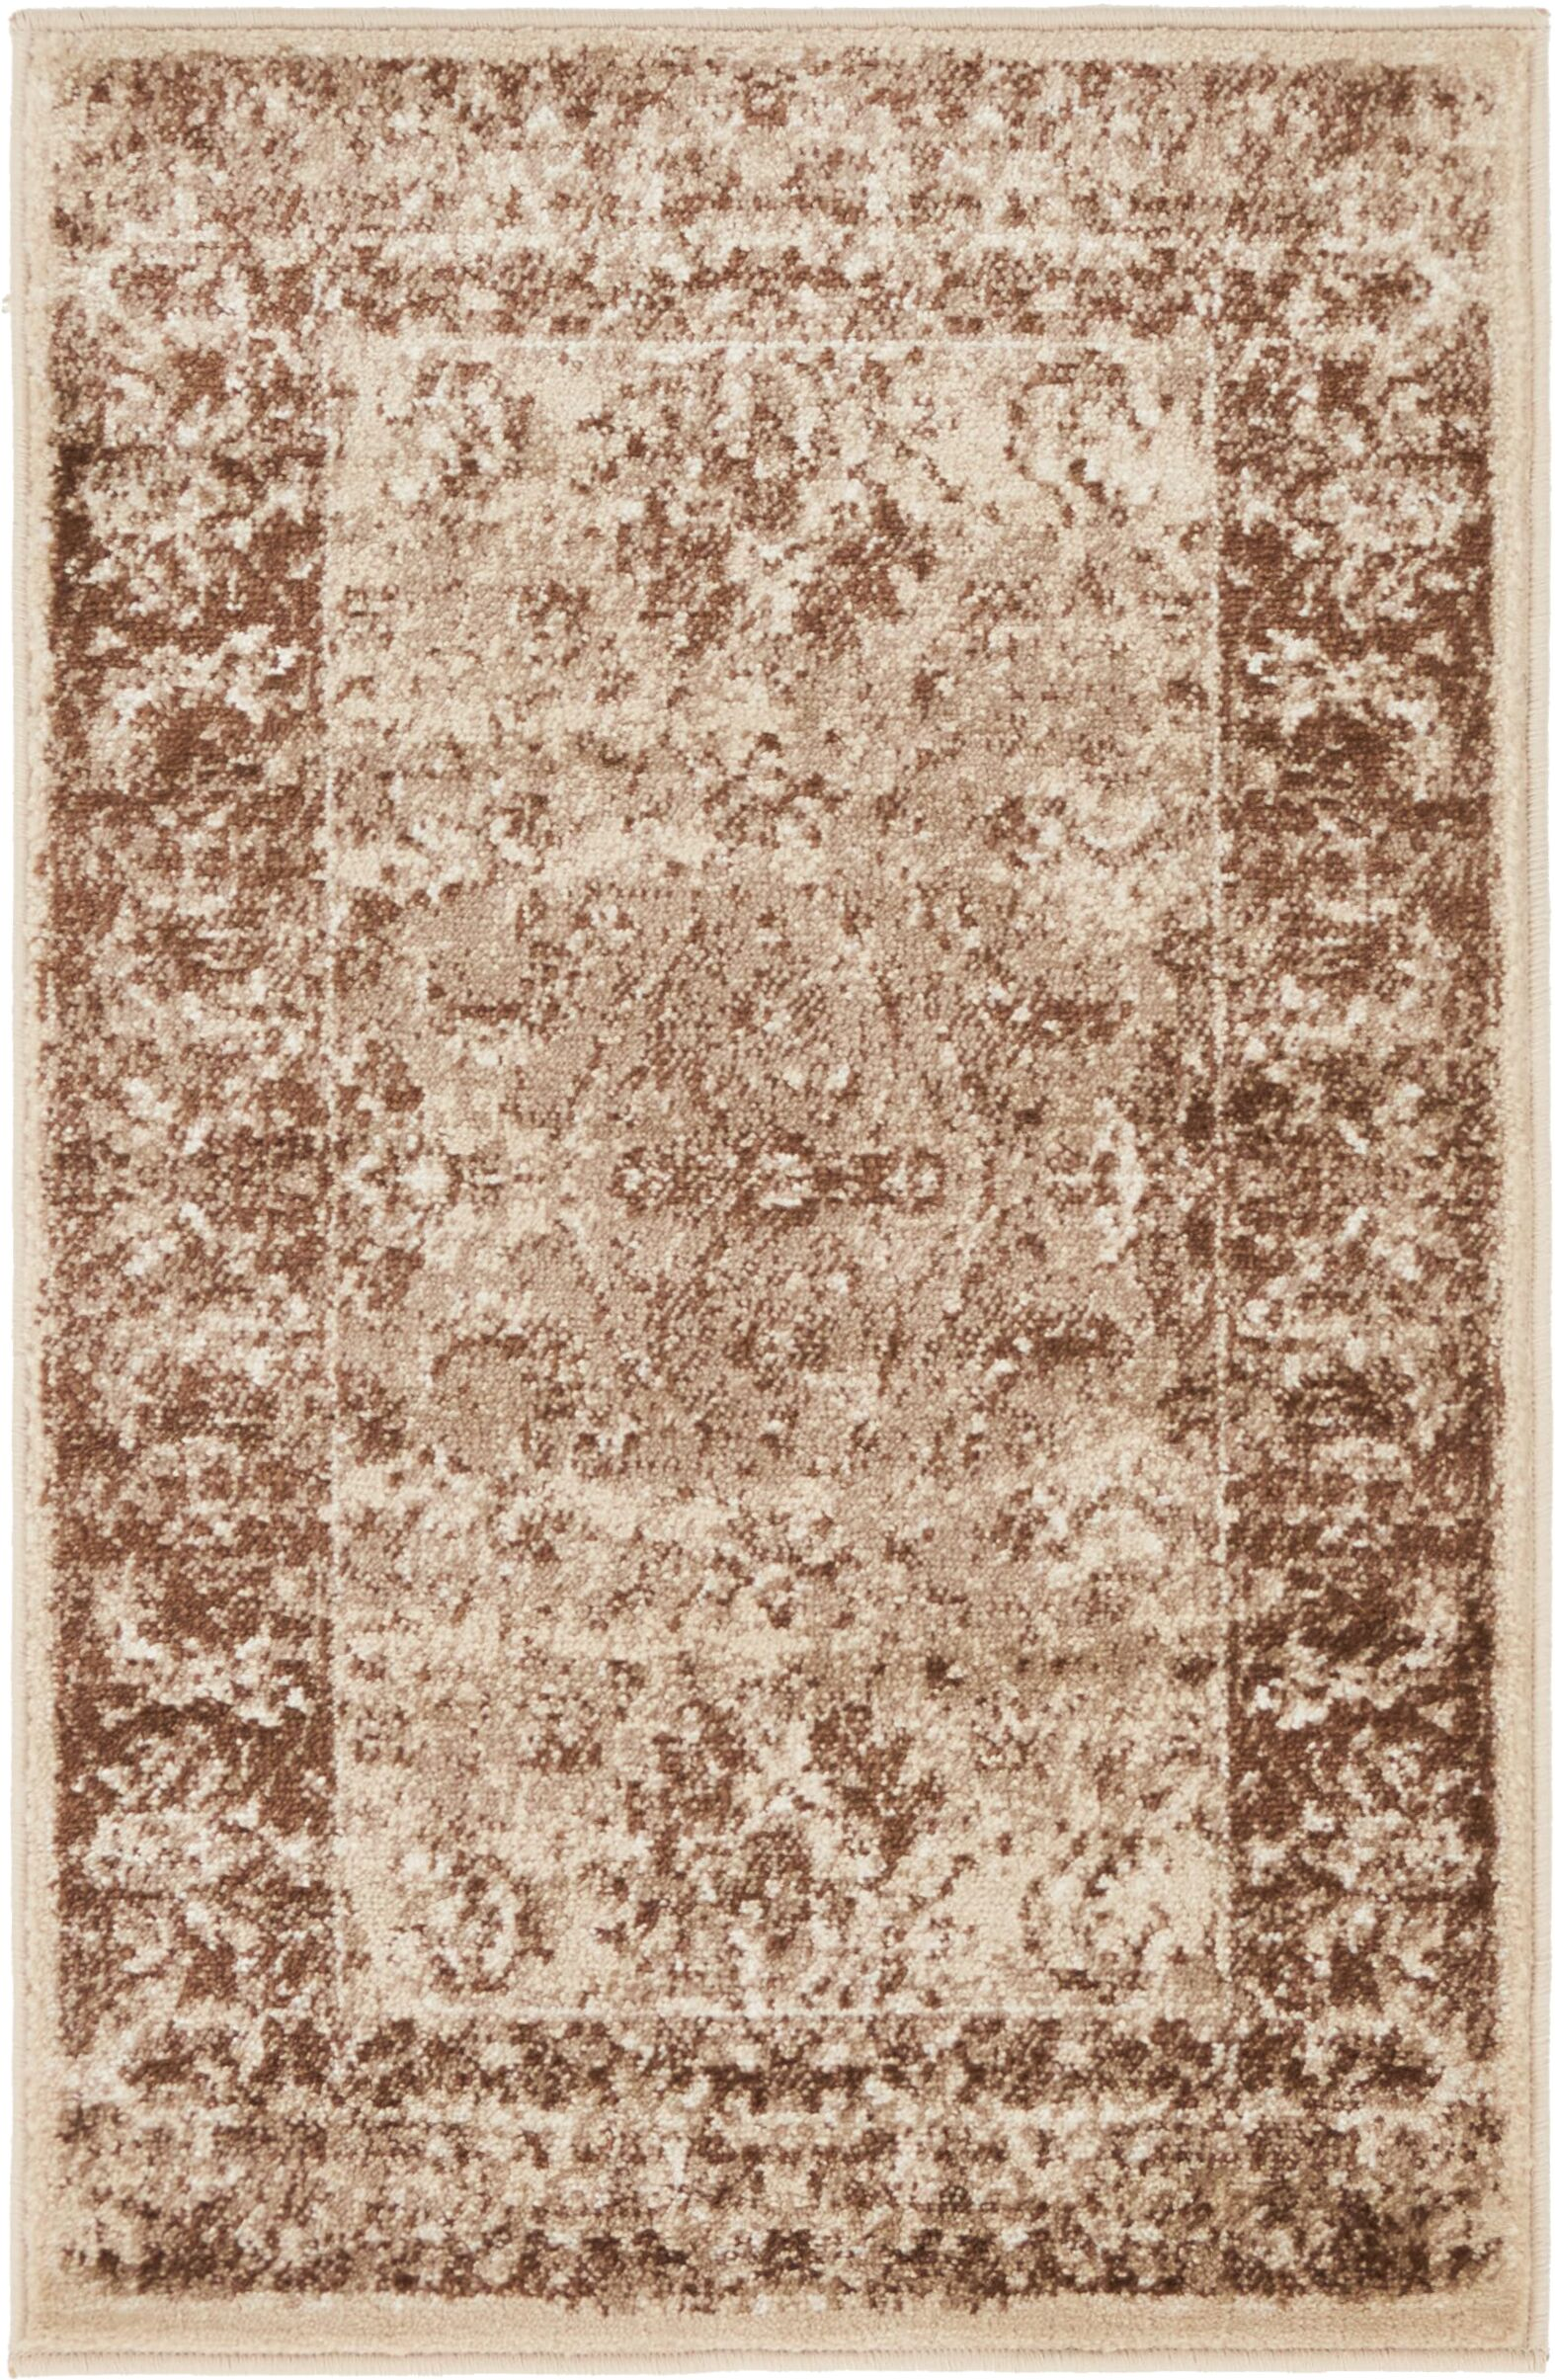 Neuilly Brown/Cream Area Rug Rug Size: Rectangle 2' x 3'